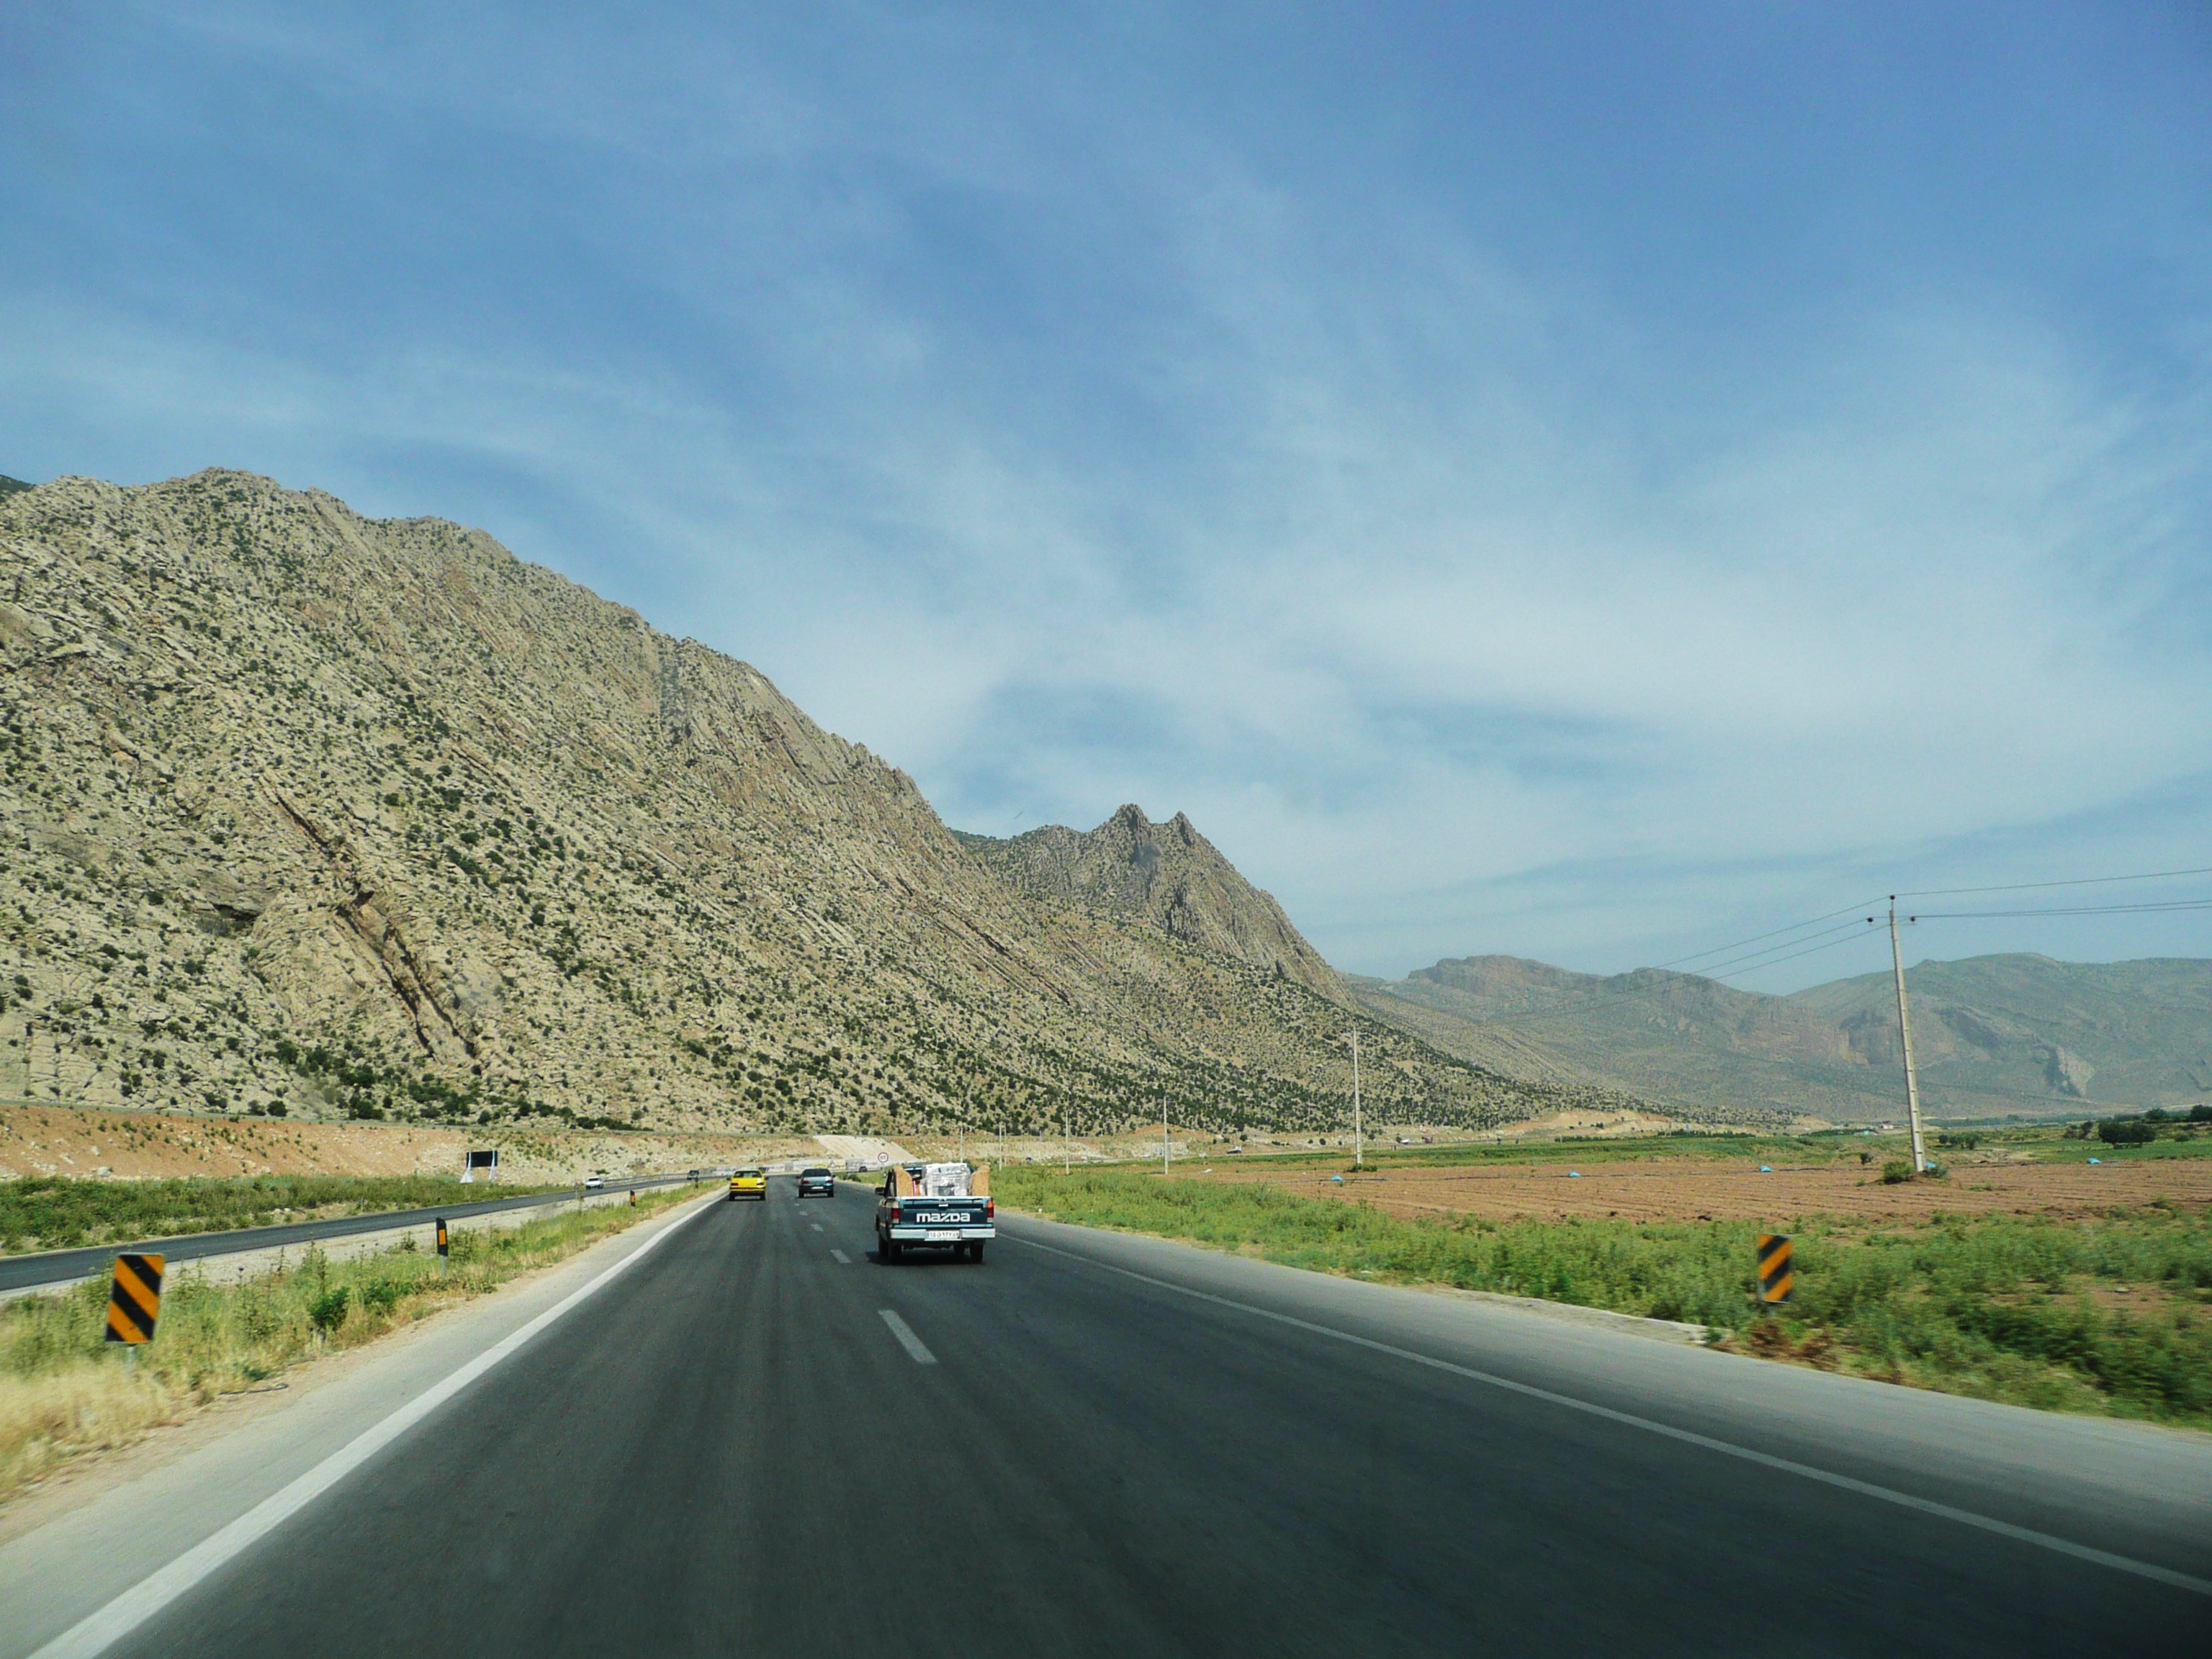 On the road from Shiraz to Isfahan